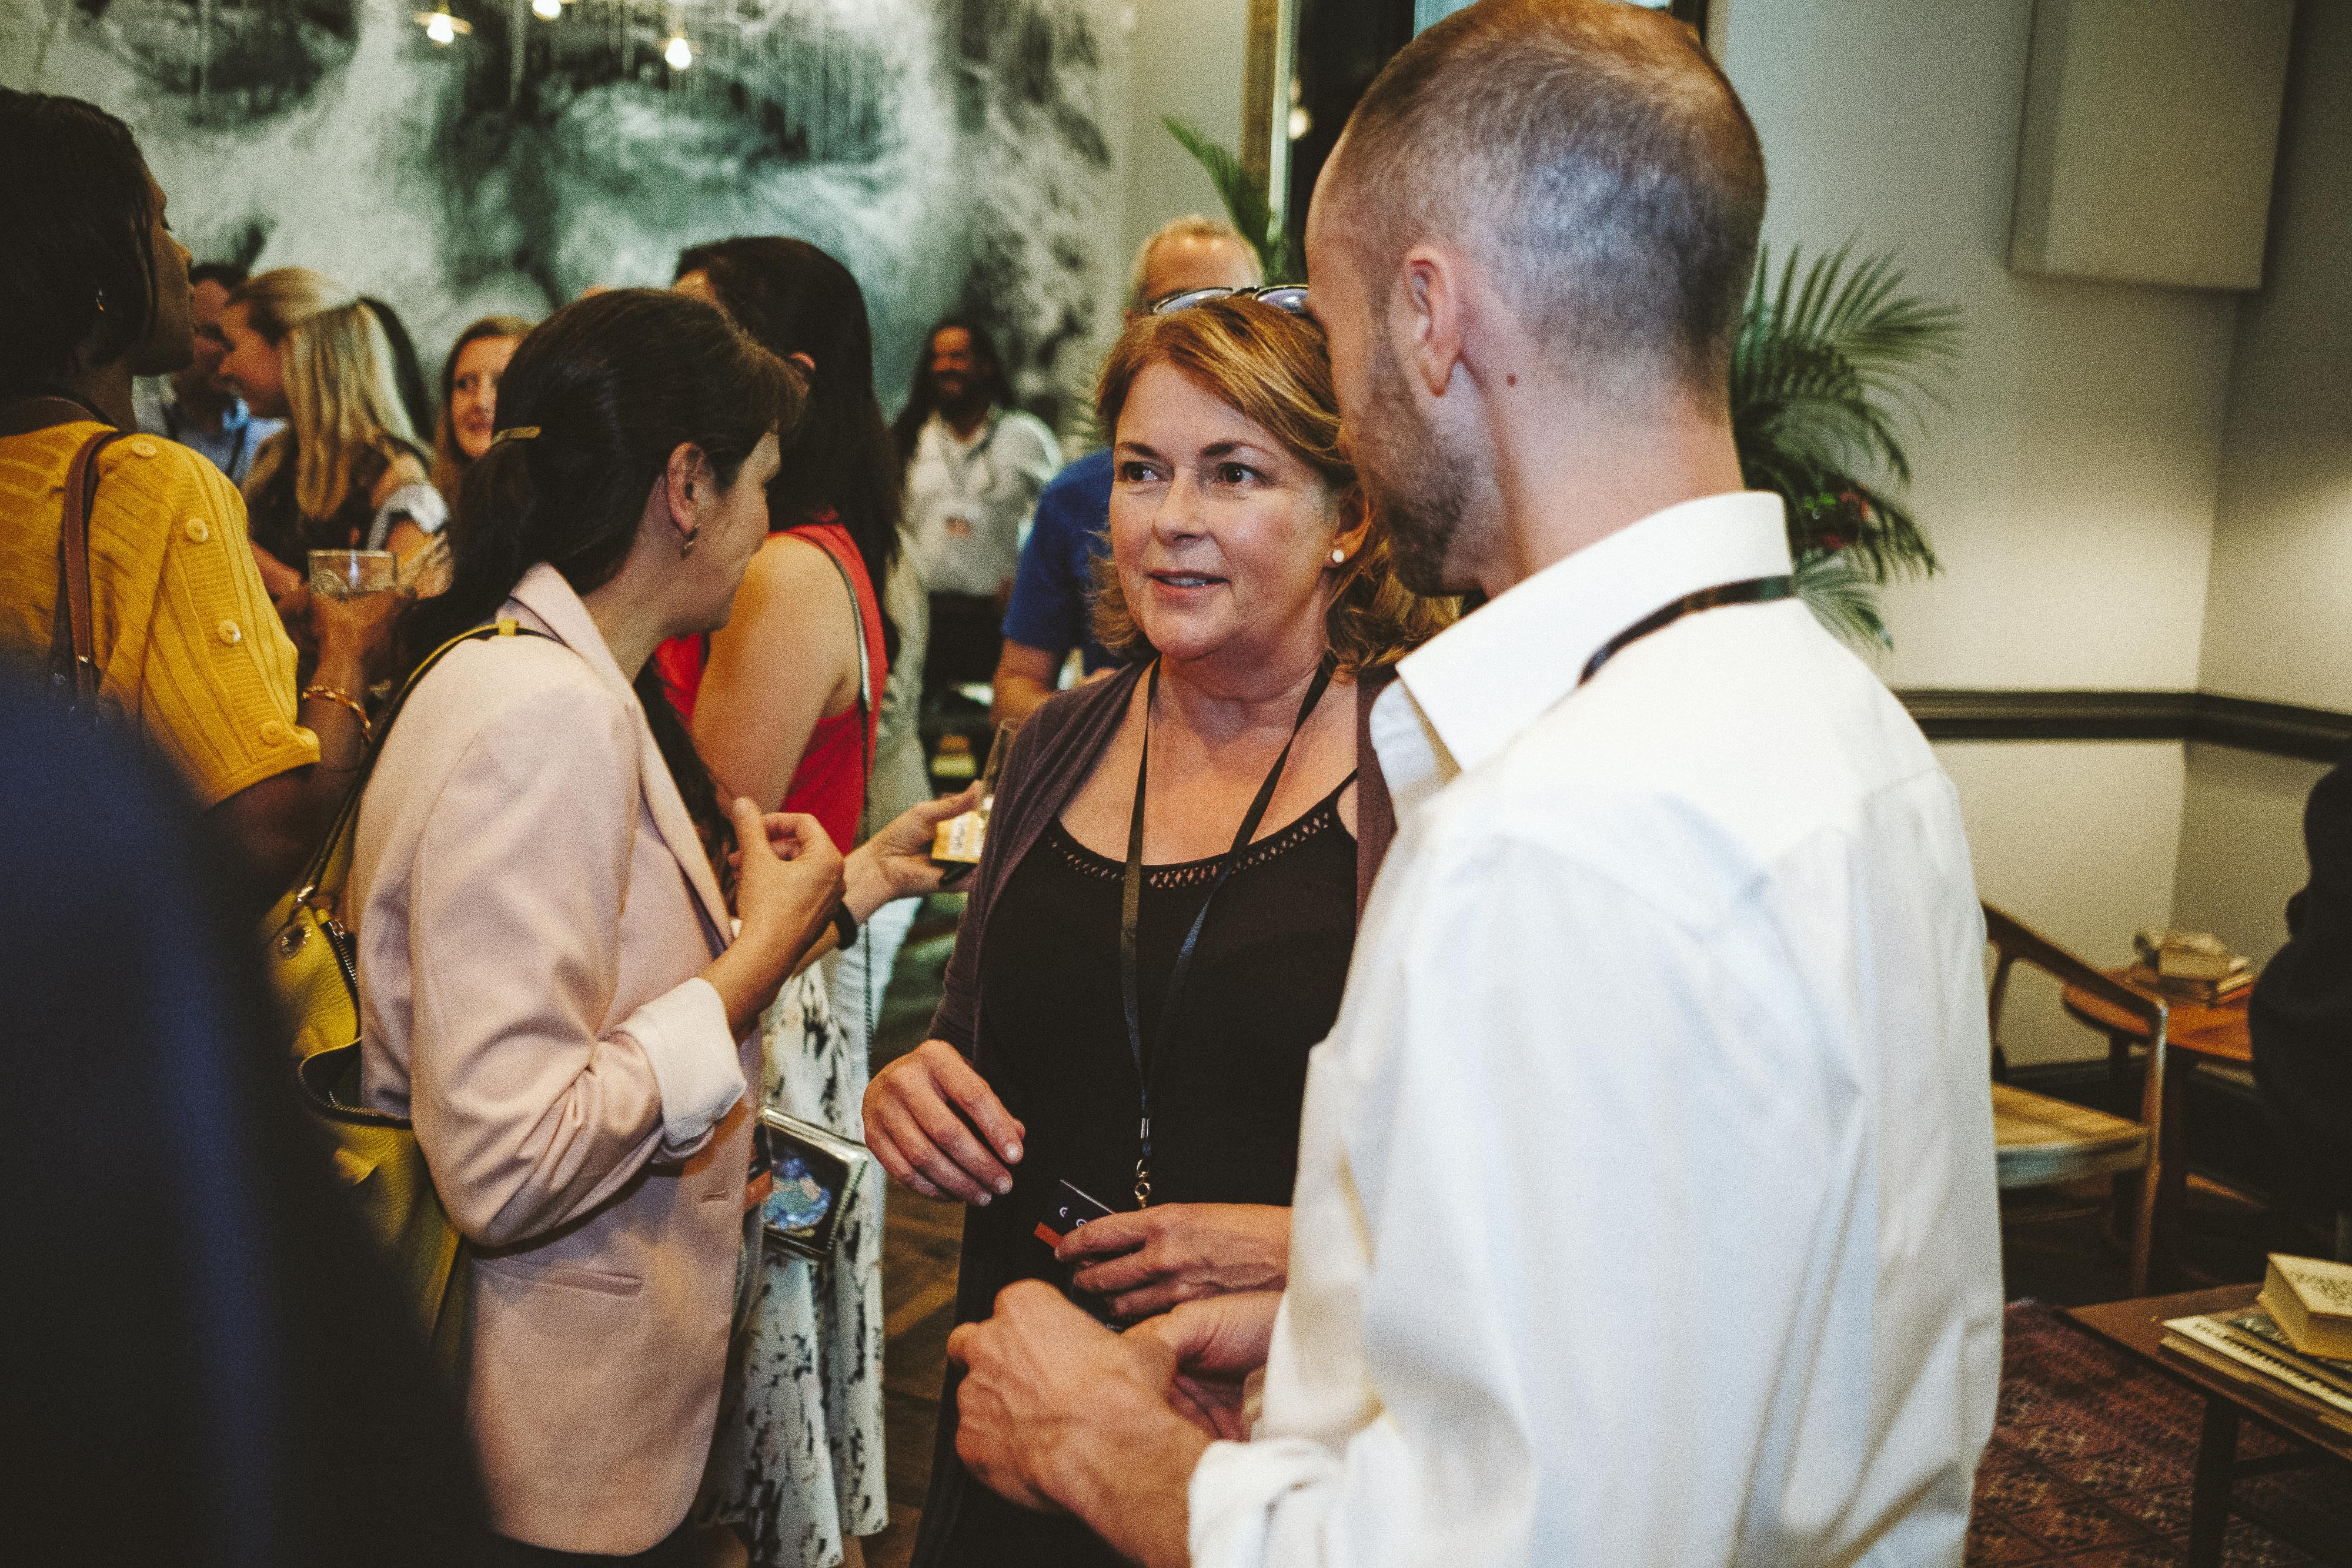 A male and female chatting at a networking event at the Common House in Charlottesville.